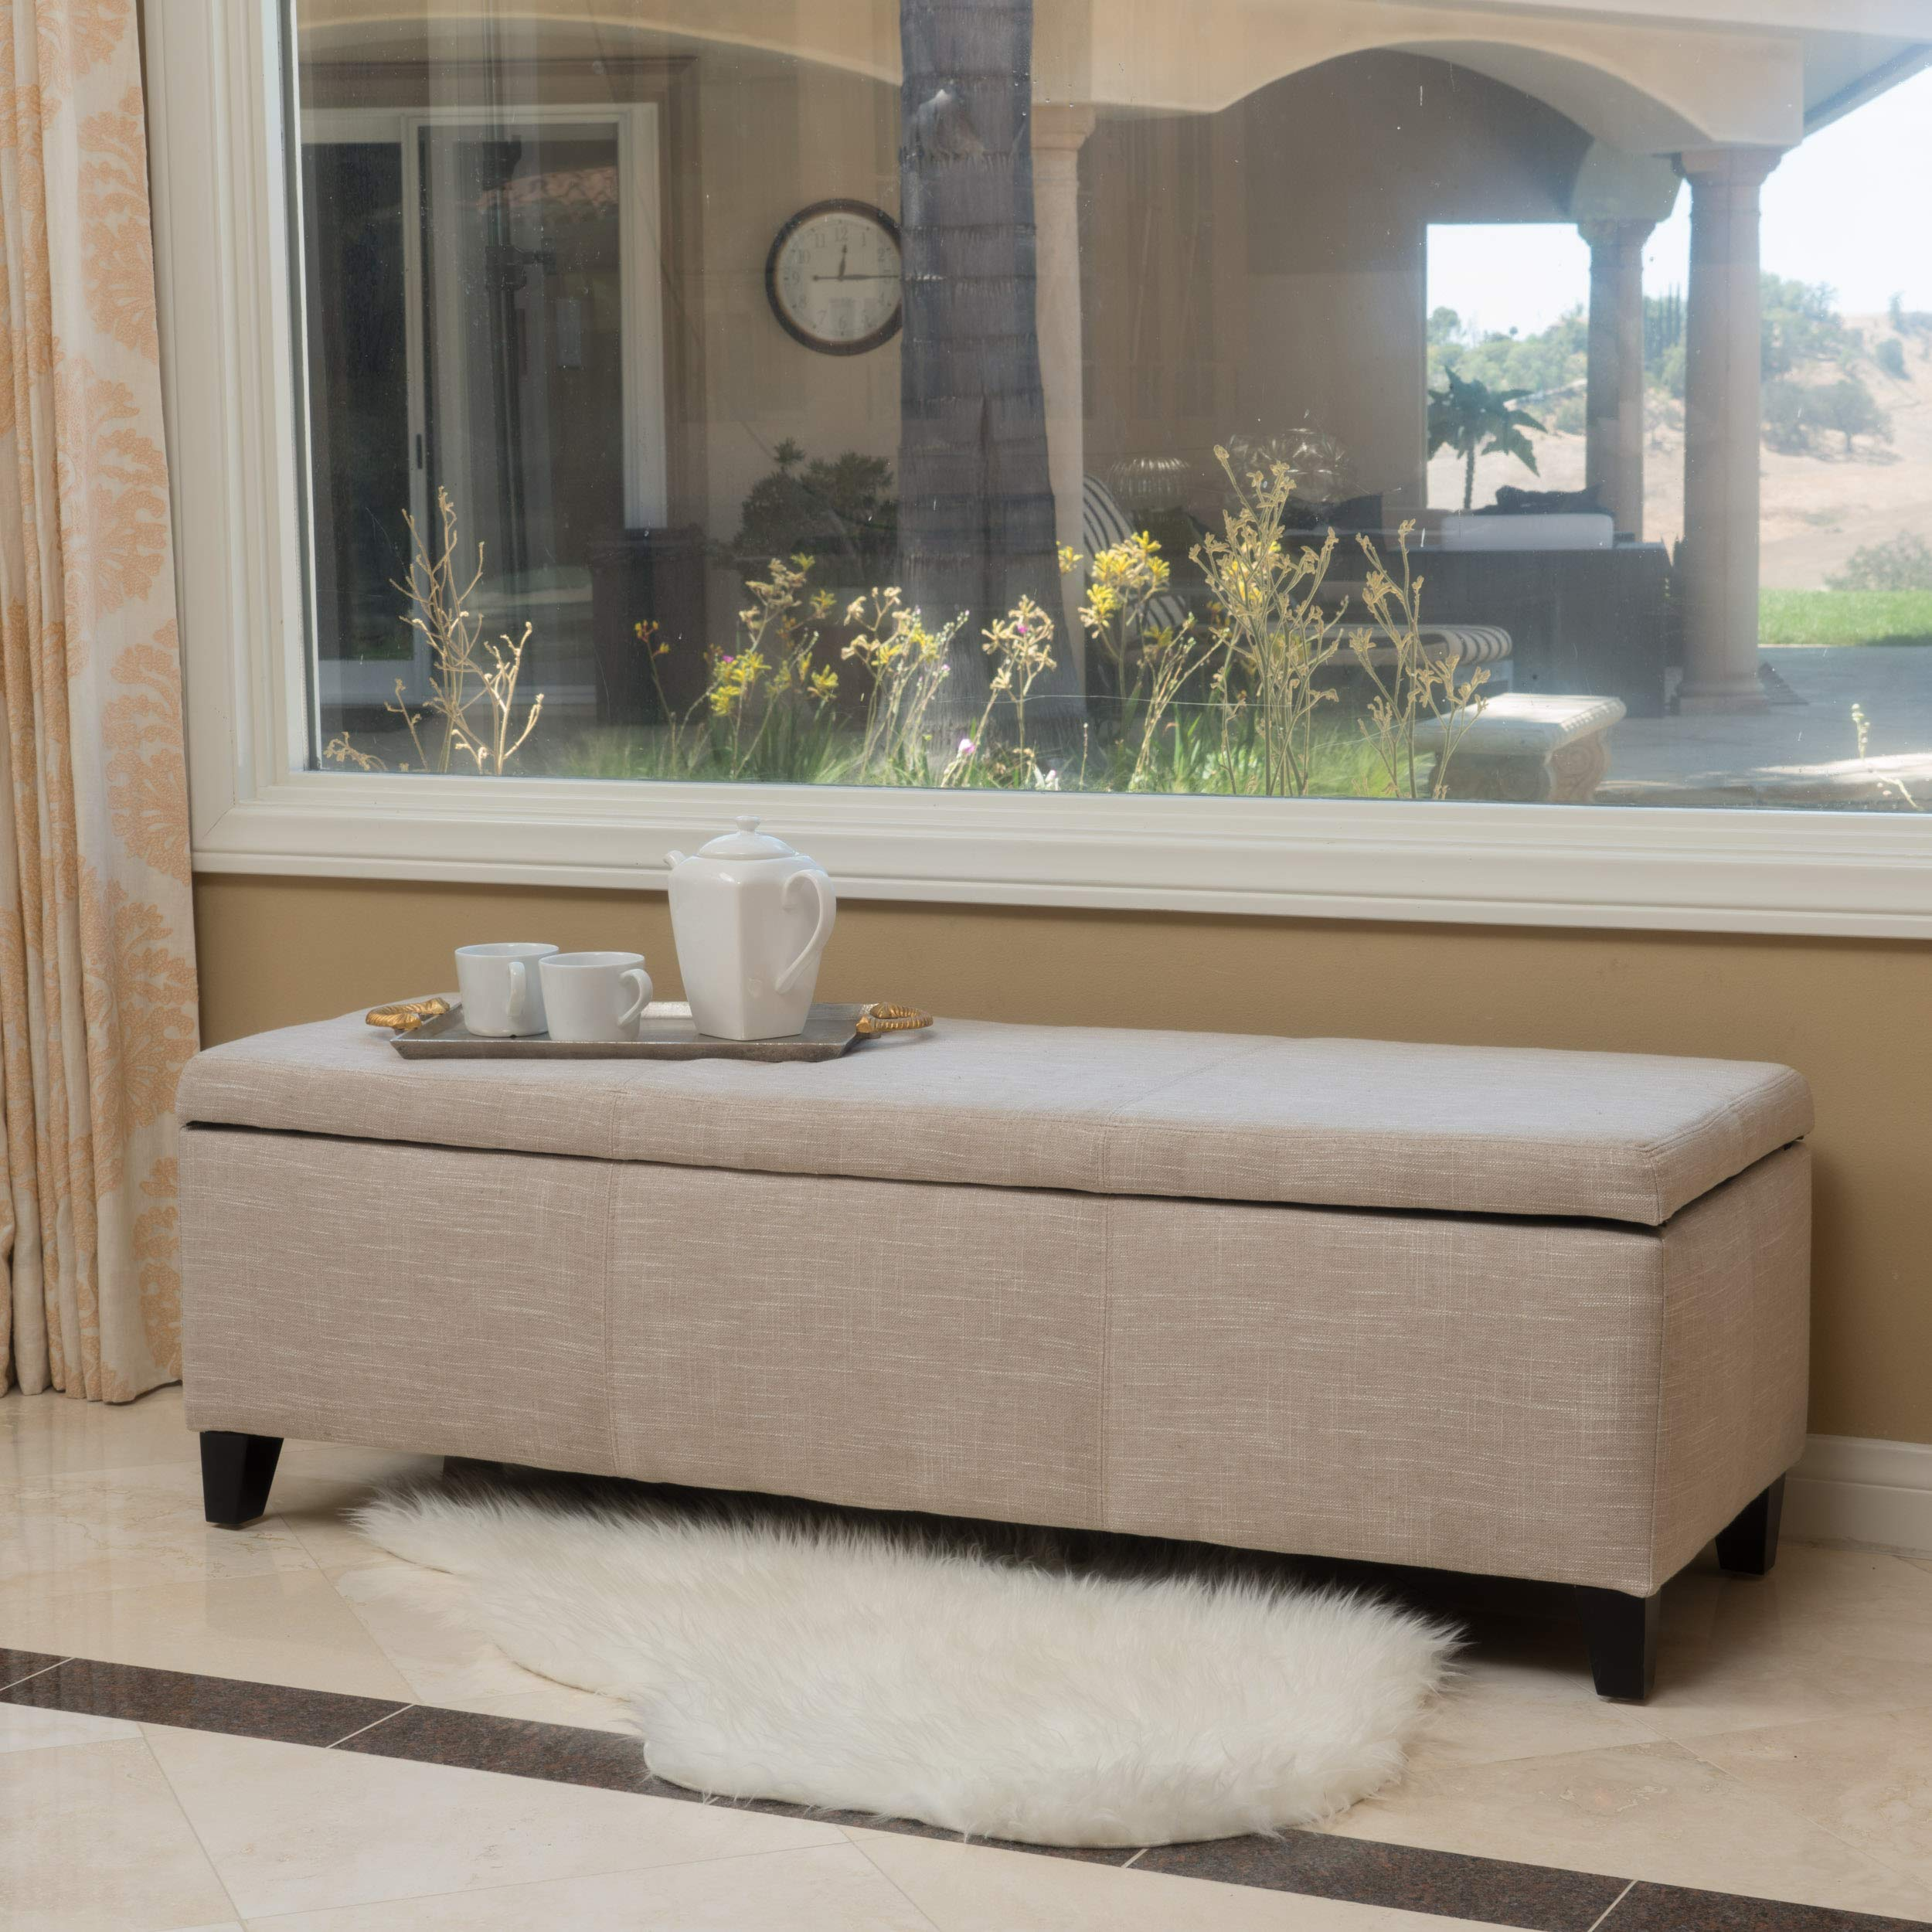 Christopher Knight Home 298339 Living Sarelia Bench Storage Ottoman (Light Beige) by Christopher Knight Home